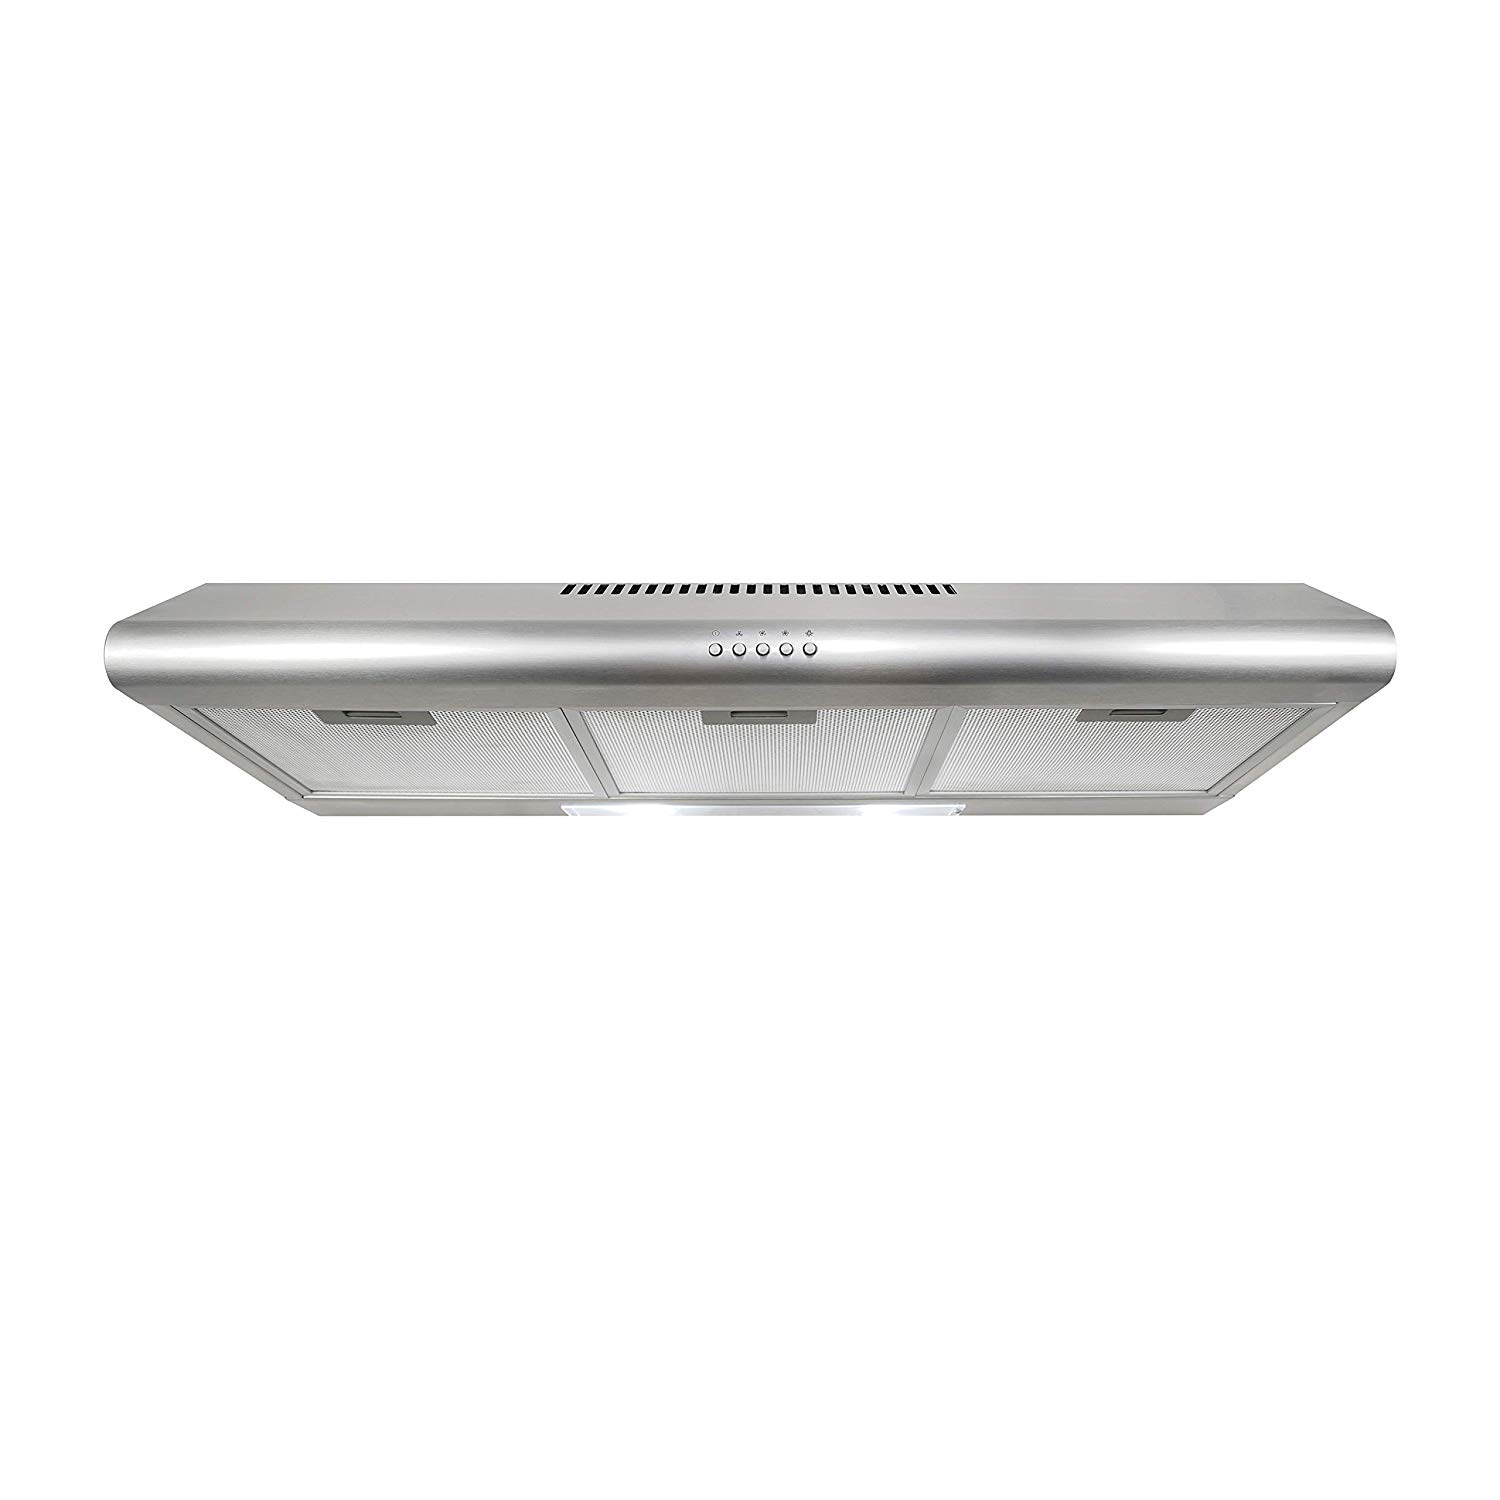 cosmo cos 5mu36 36 in under cabinet range hood ductless convertible duct slim kitchen stove vent with 3 speed exhaust fan reusable filter and led